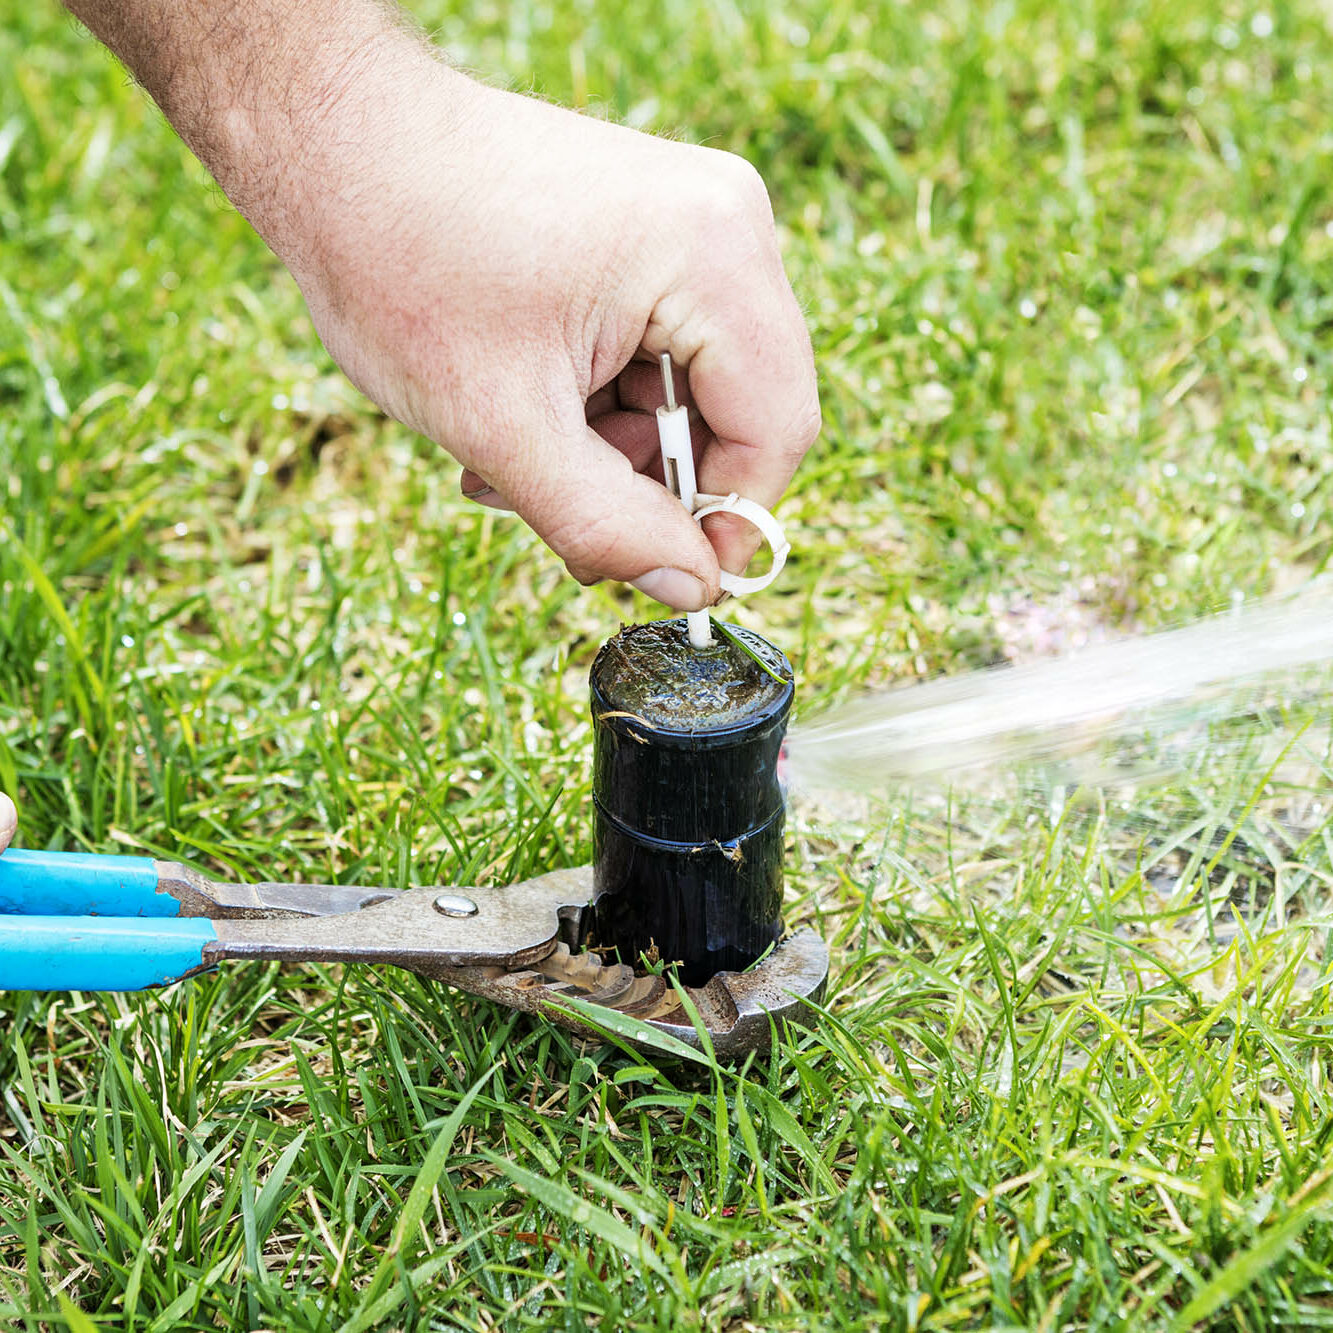 A pop-up sprinkler system head is being adjusted with a key to decrease or increase radius of the spray.